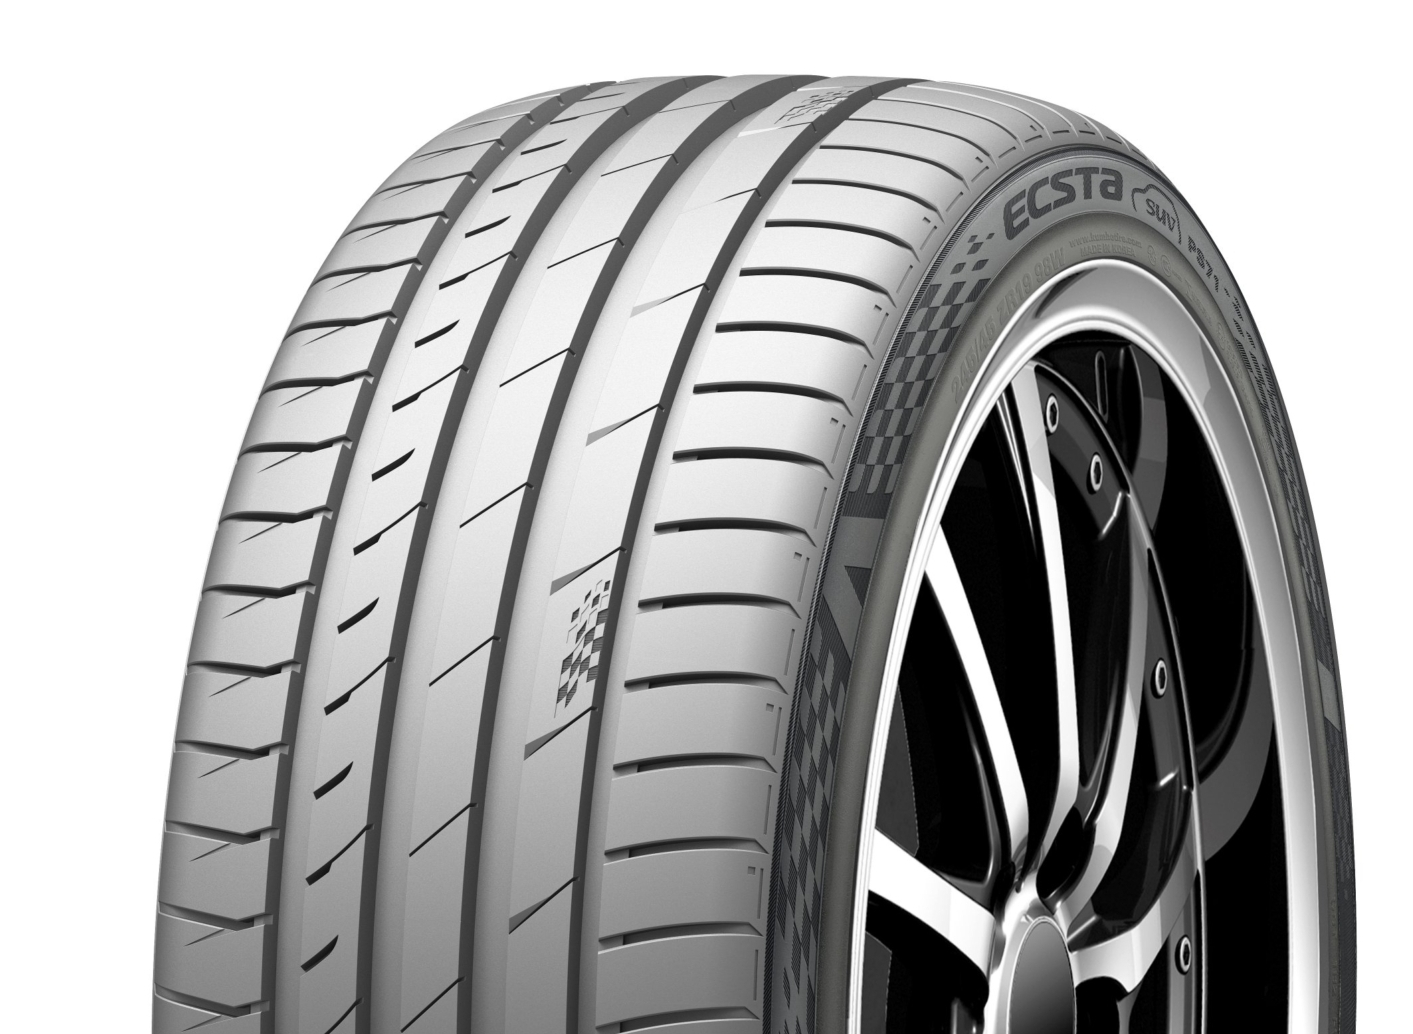 Kumho adds 12 Ectsa PS71 SUV tyre sizes to its range